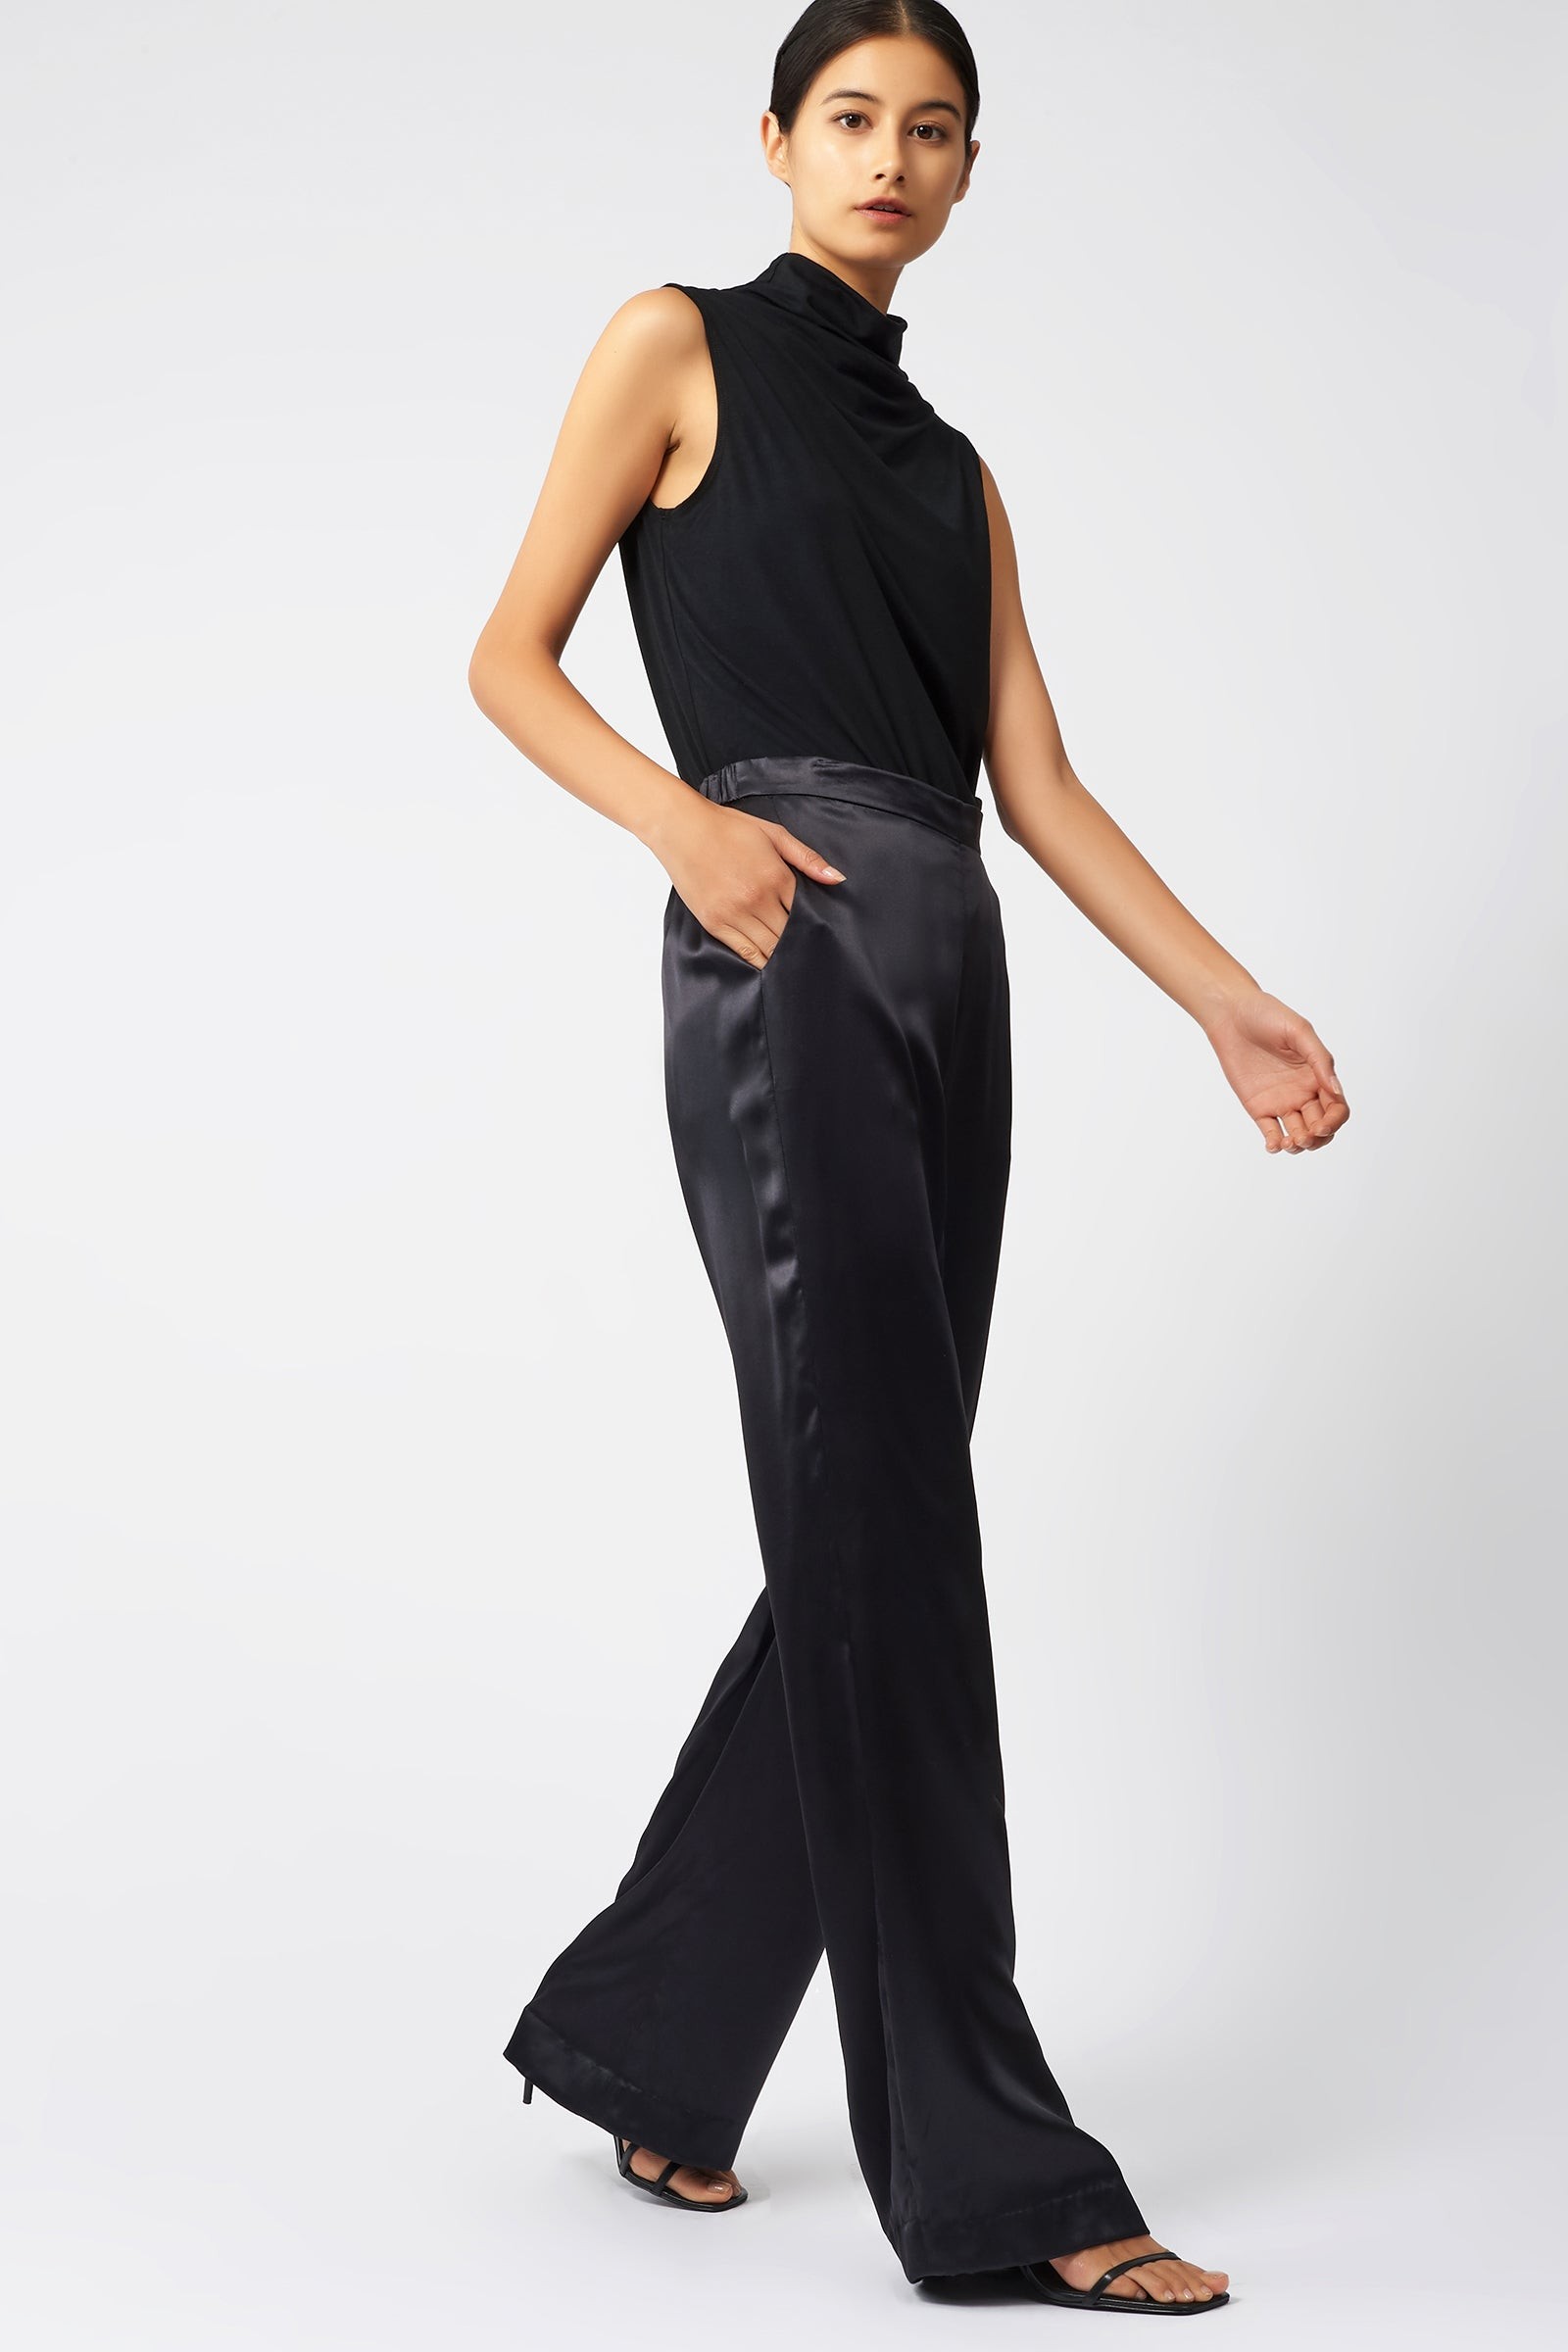 Kal Rieman Classic Silk Trouser in Black on Model Full Side View